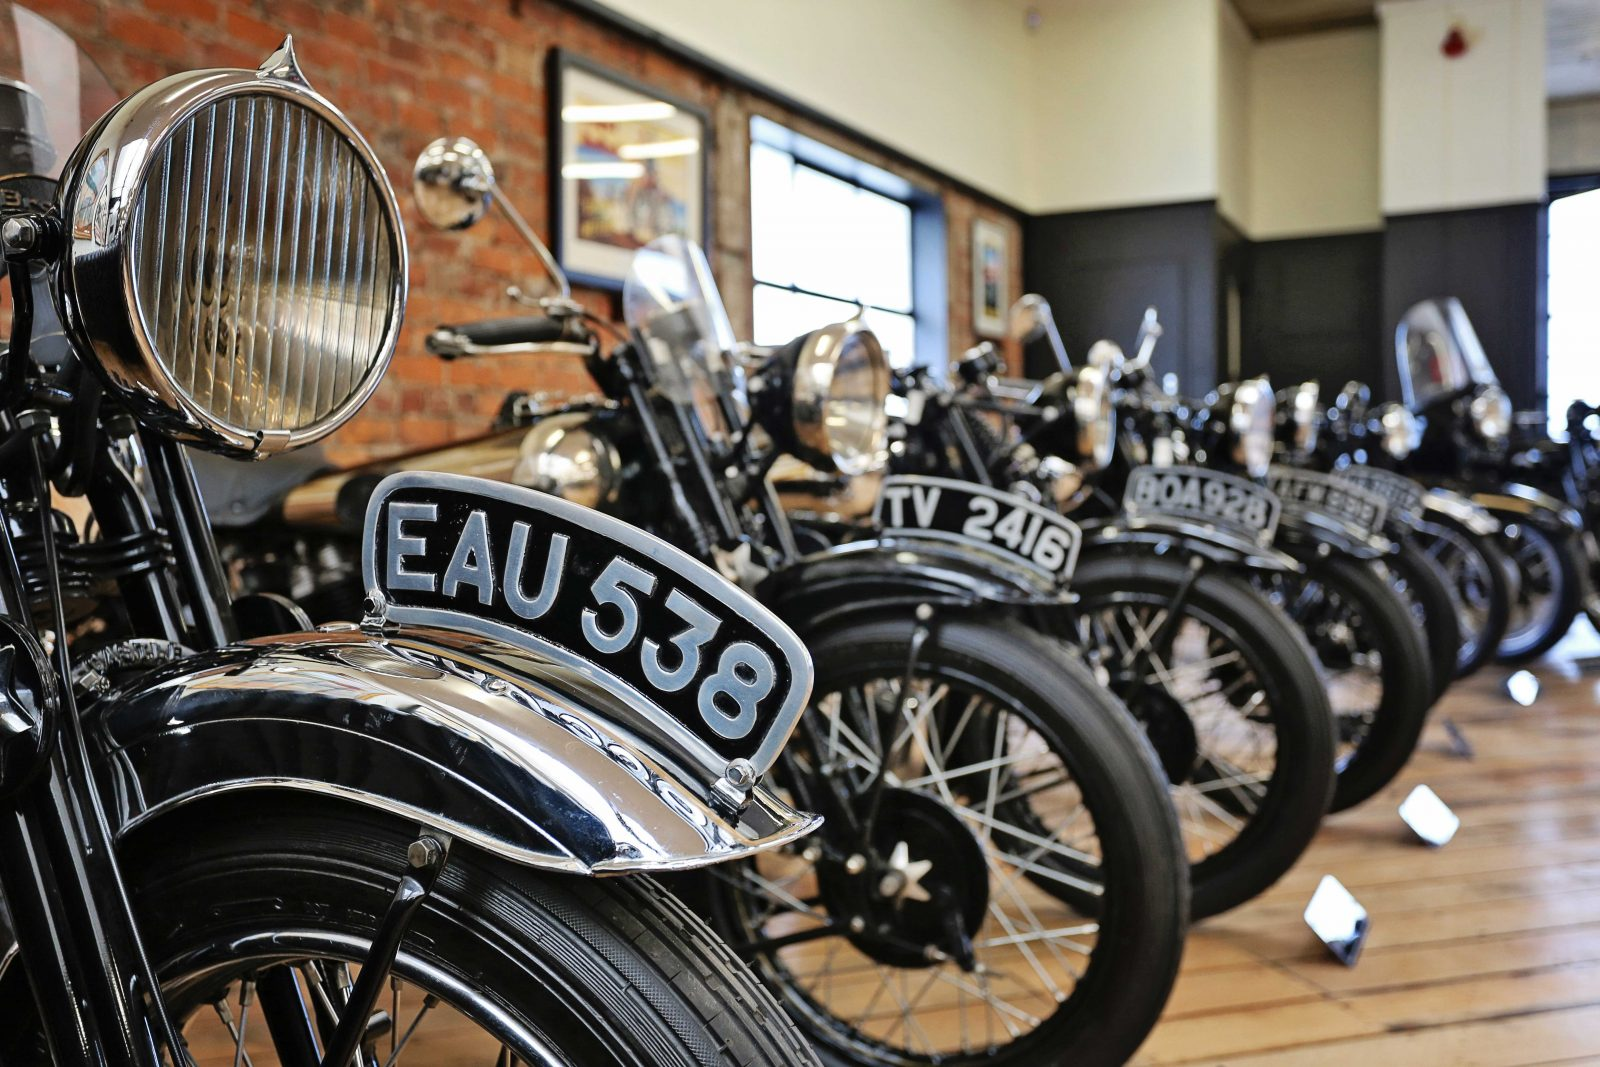 classic-motorcycle-mecca_-james-jubb---high-res-_53.jpg